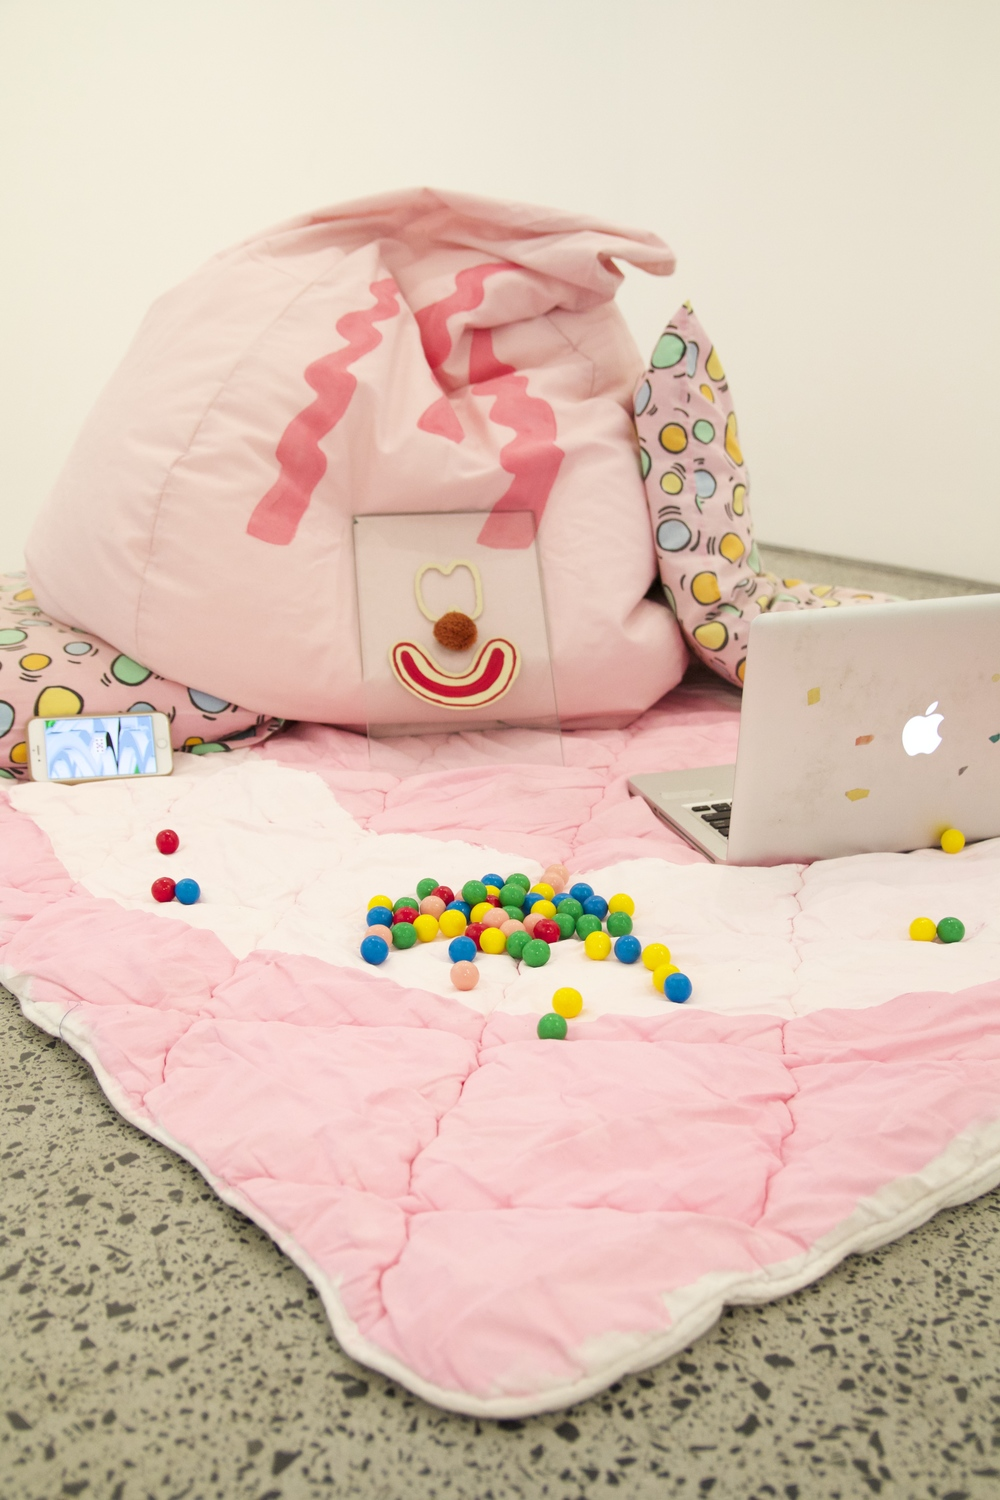 Rec Room (installation view)  Bean bag, laptop, Iphone, gum balls, glass, acrylic paint, pompom, bedding  dimensions variable  Photo: Isabel Rouch